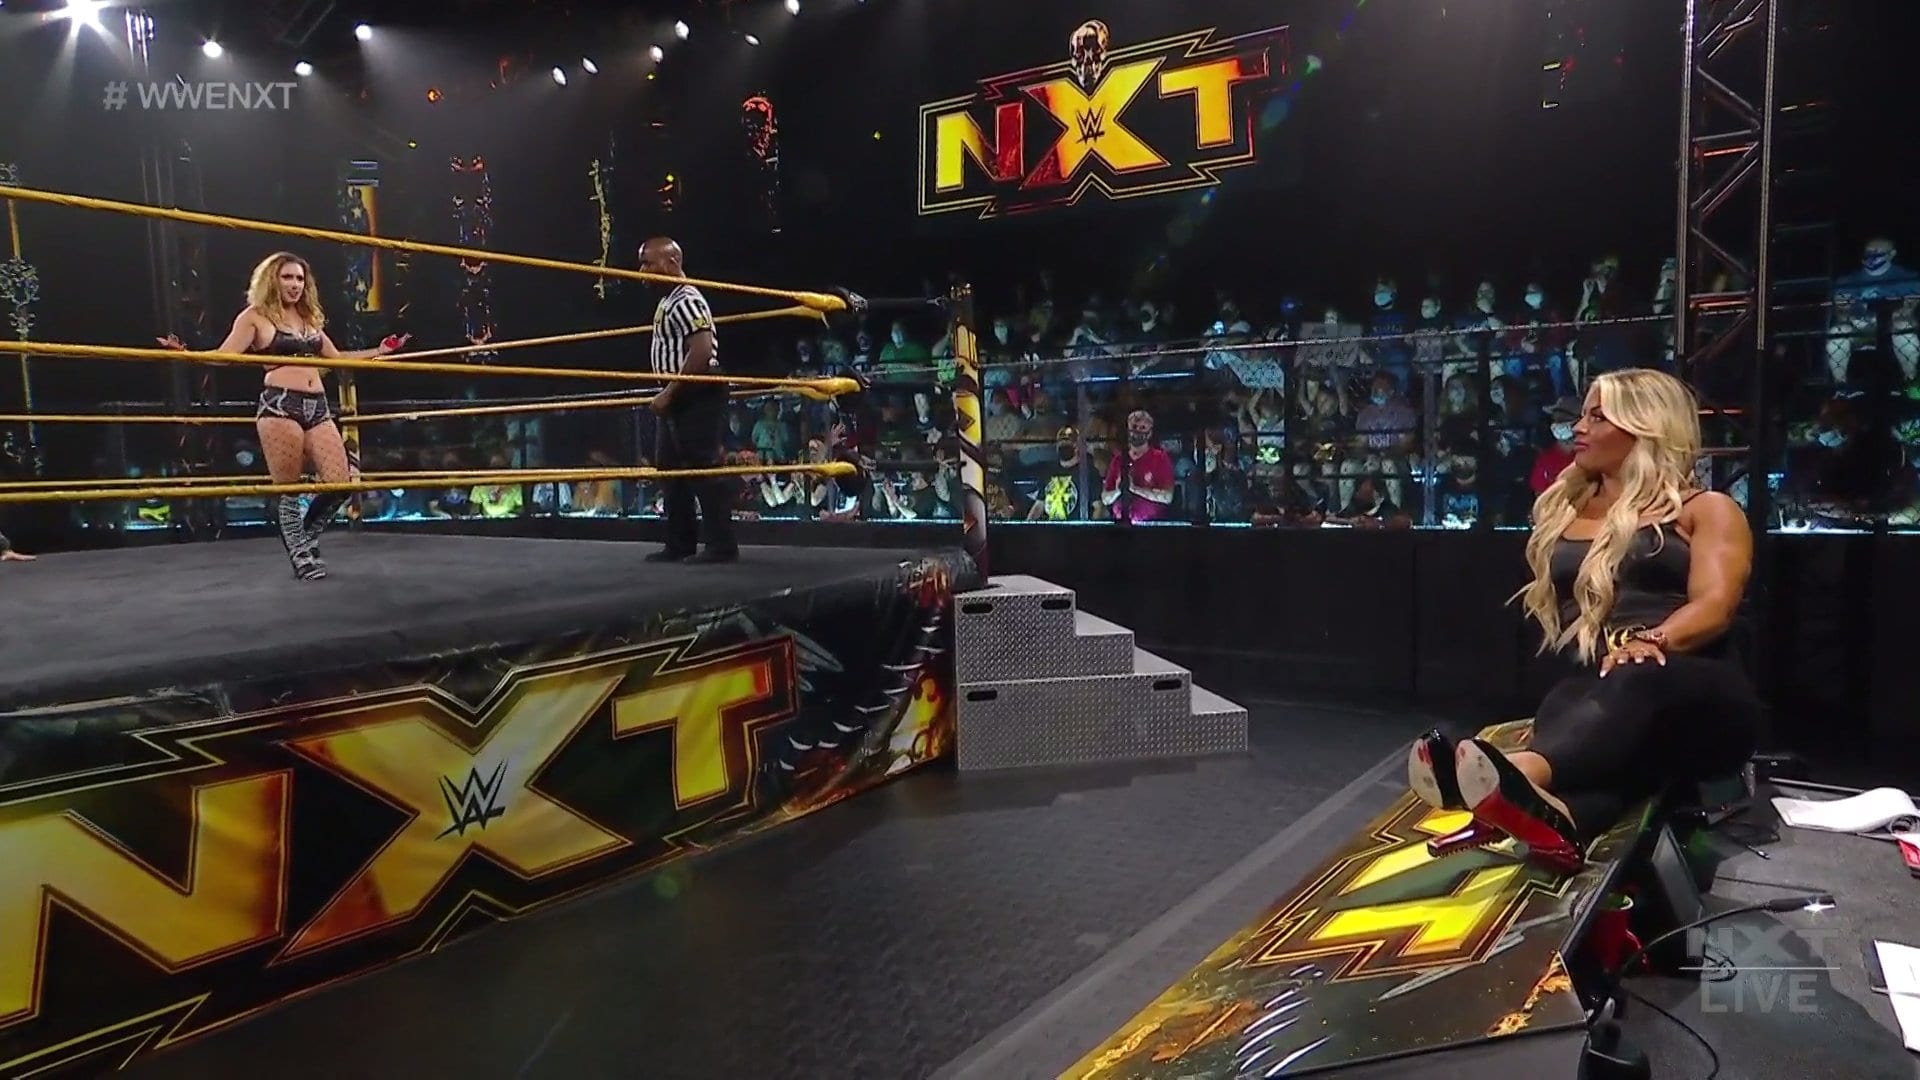 New WWE NXT Star Debuts, Mandy Rose Storyline Continues